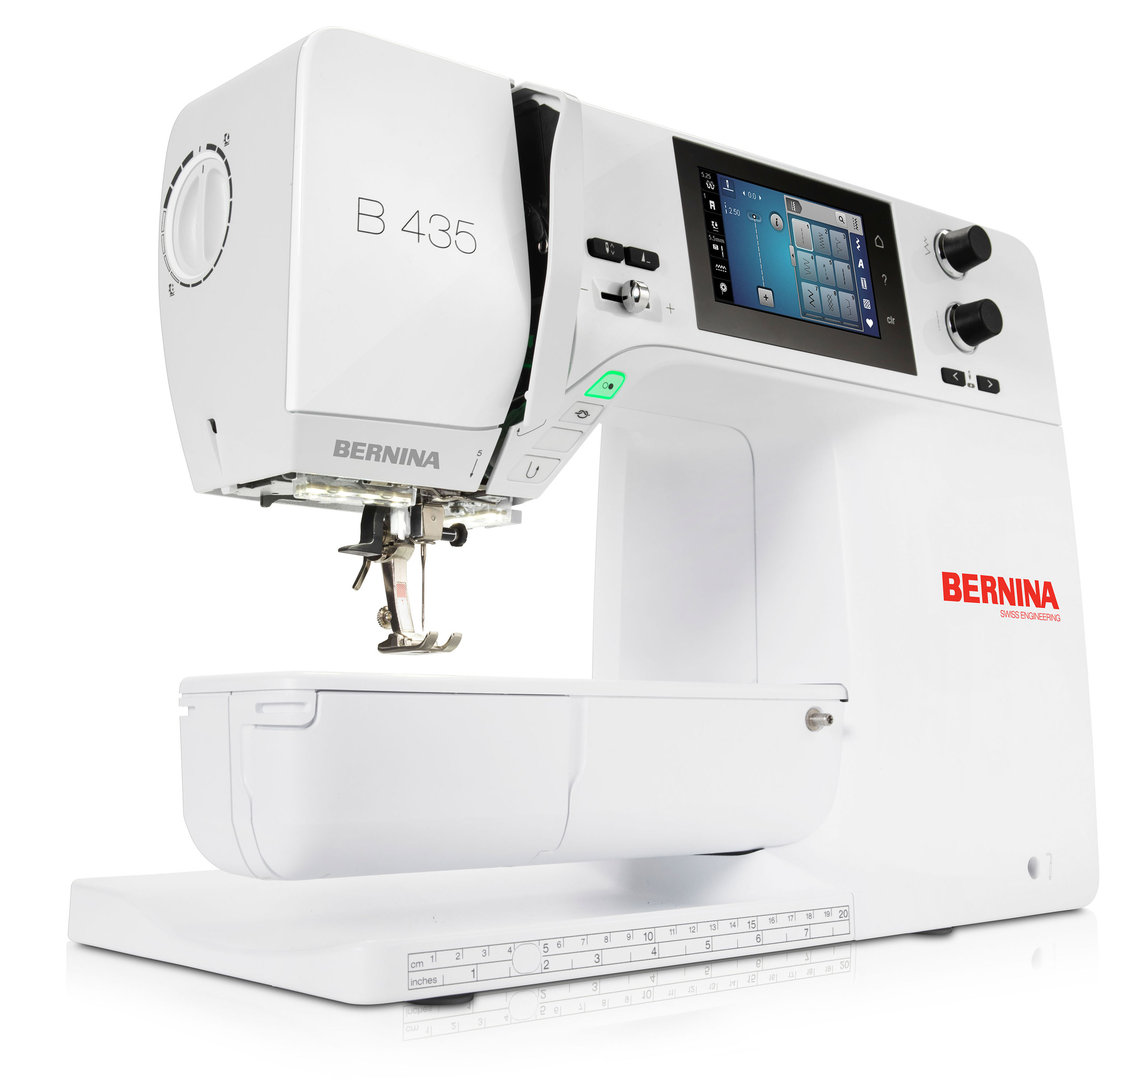 BERNINA 435 Nähmaschine (inkl. Snap-on-Füsse)